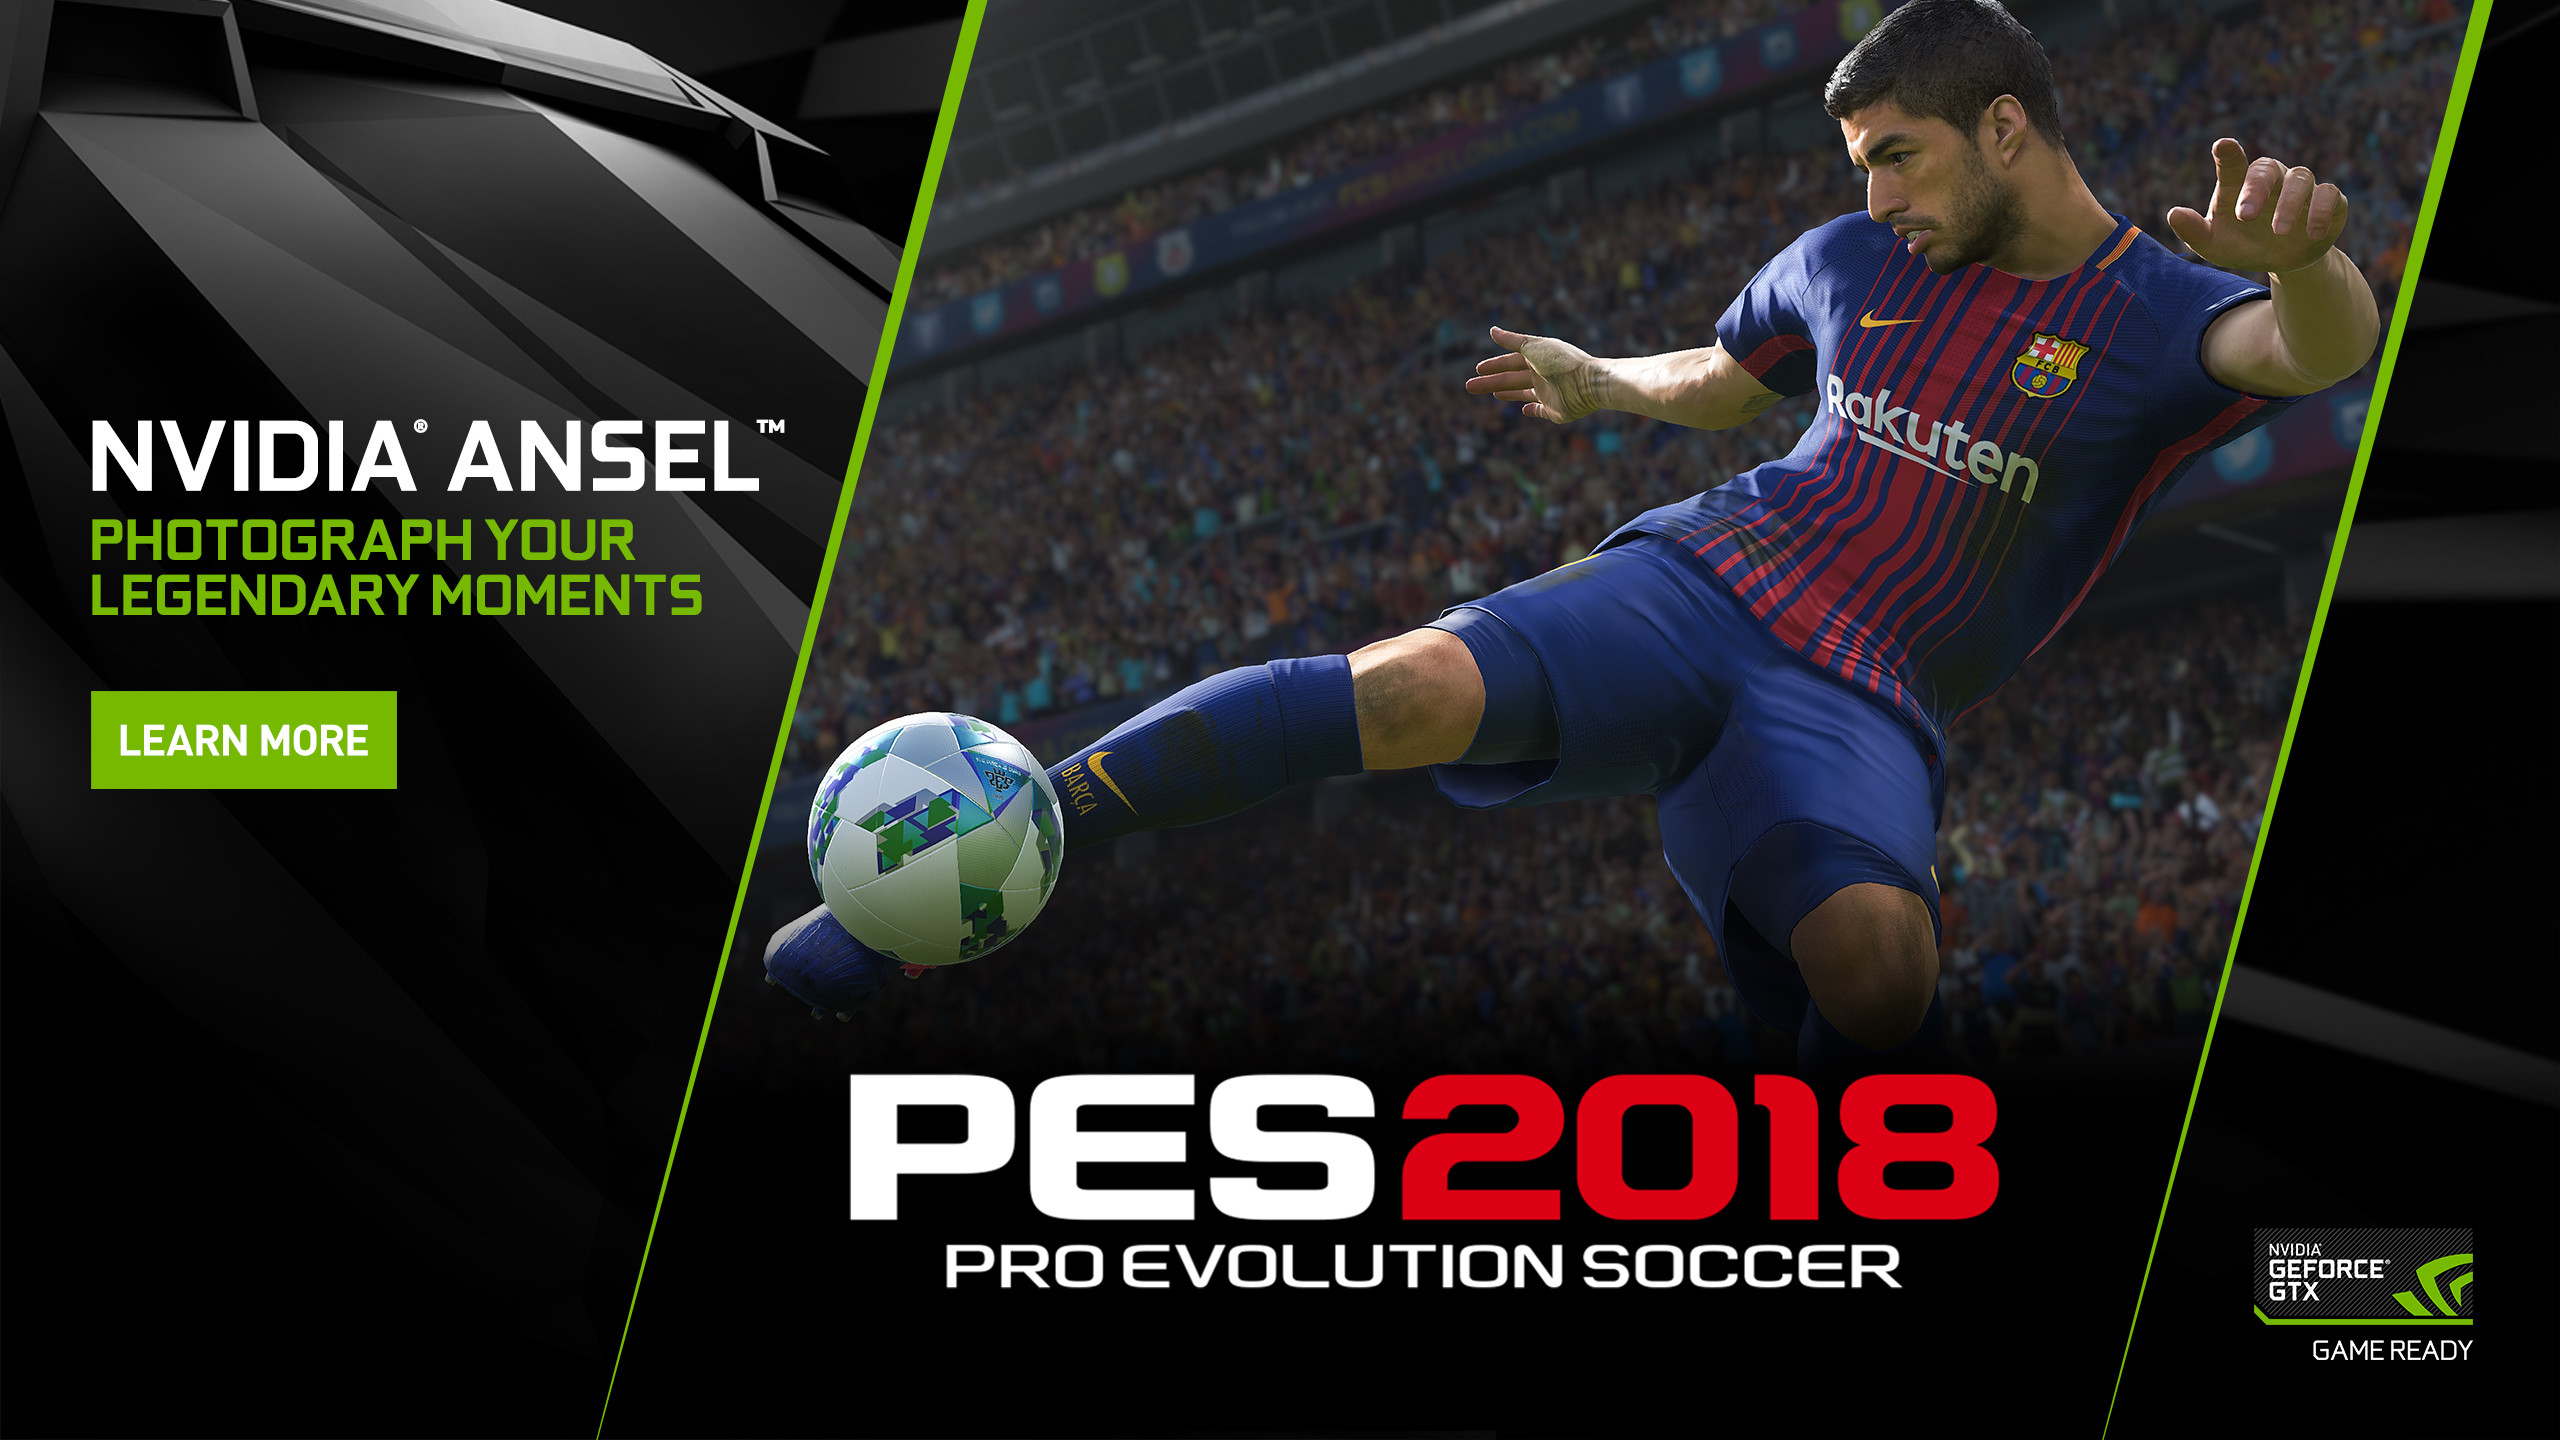 2560x1440 Pro Evolution Soccer 2018 on PC: Capture The Beautiful Game From Any Angle  With NVIDIA